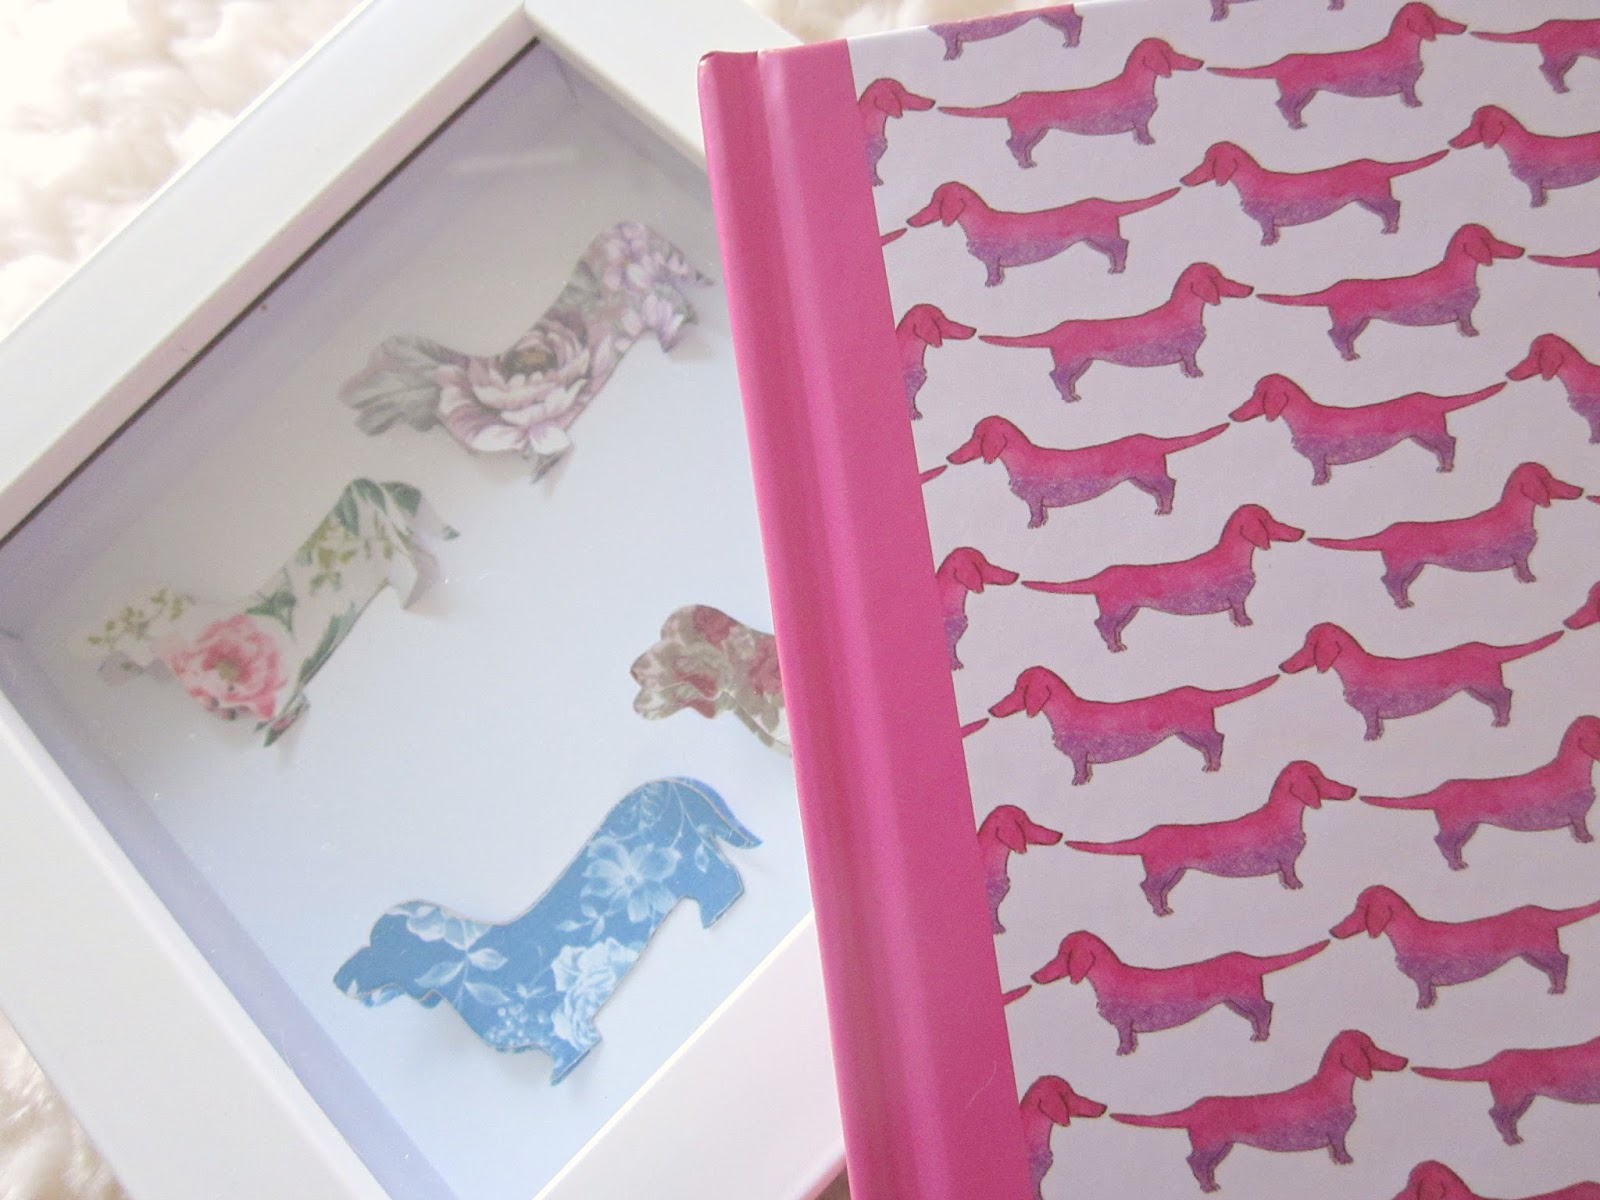 Sausage dog pink notebook and sausage dog picture in frame